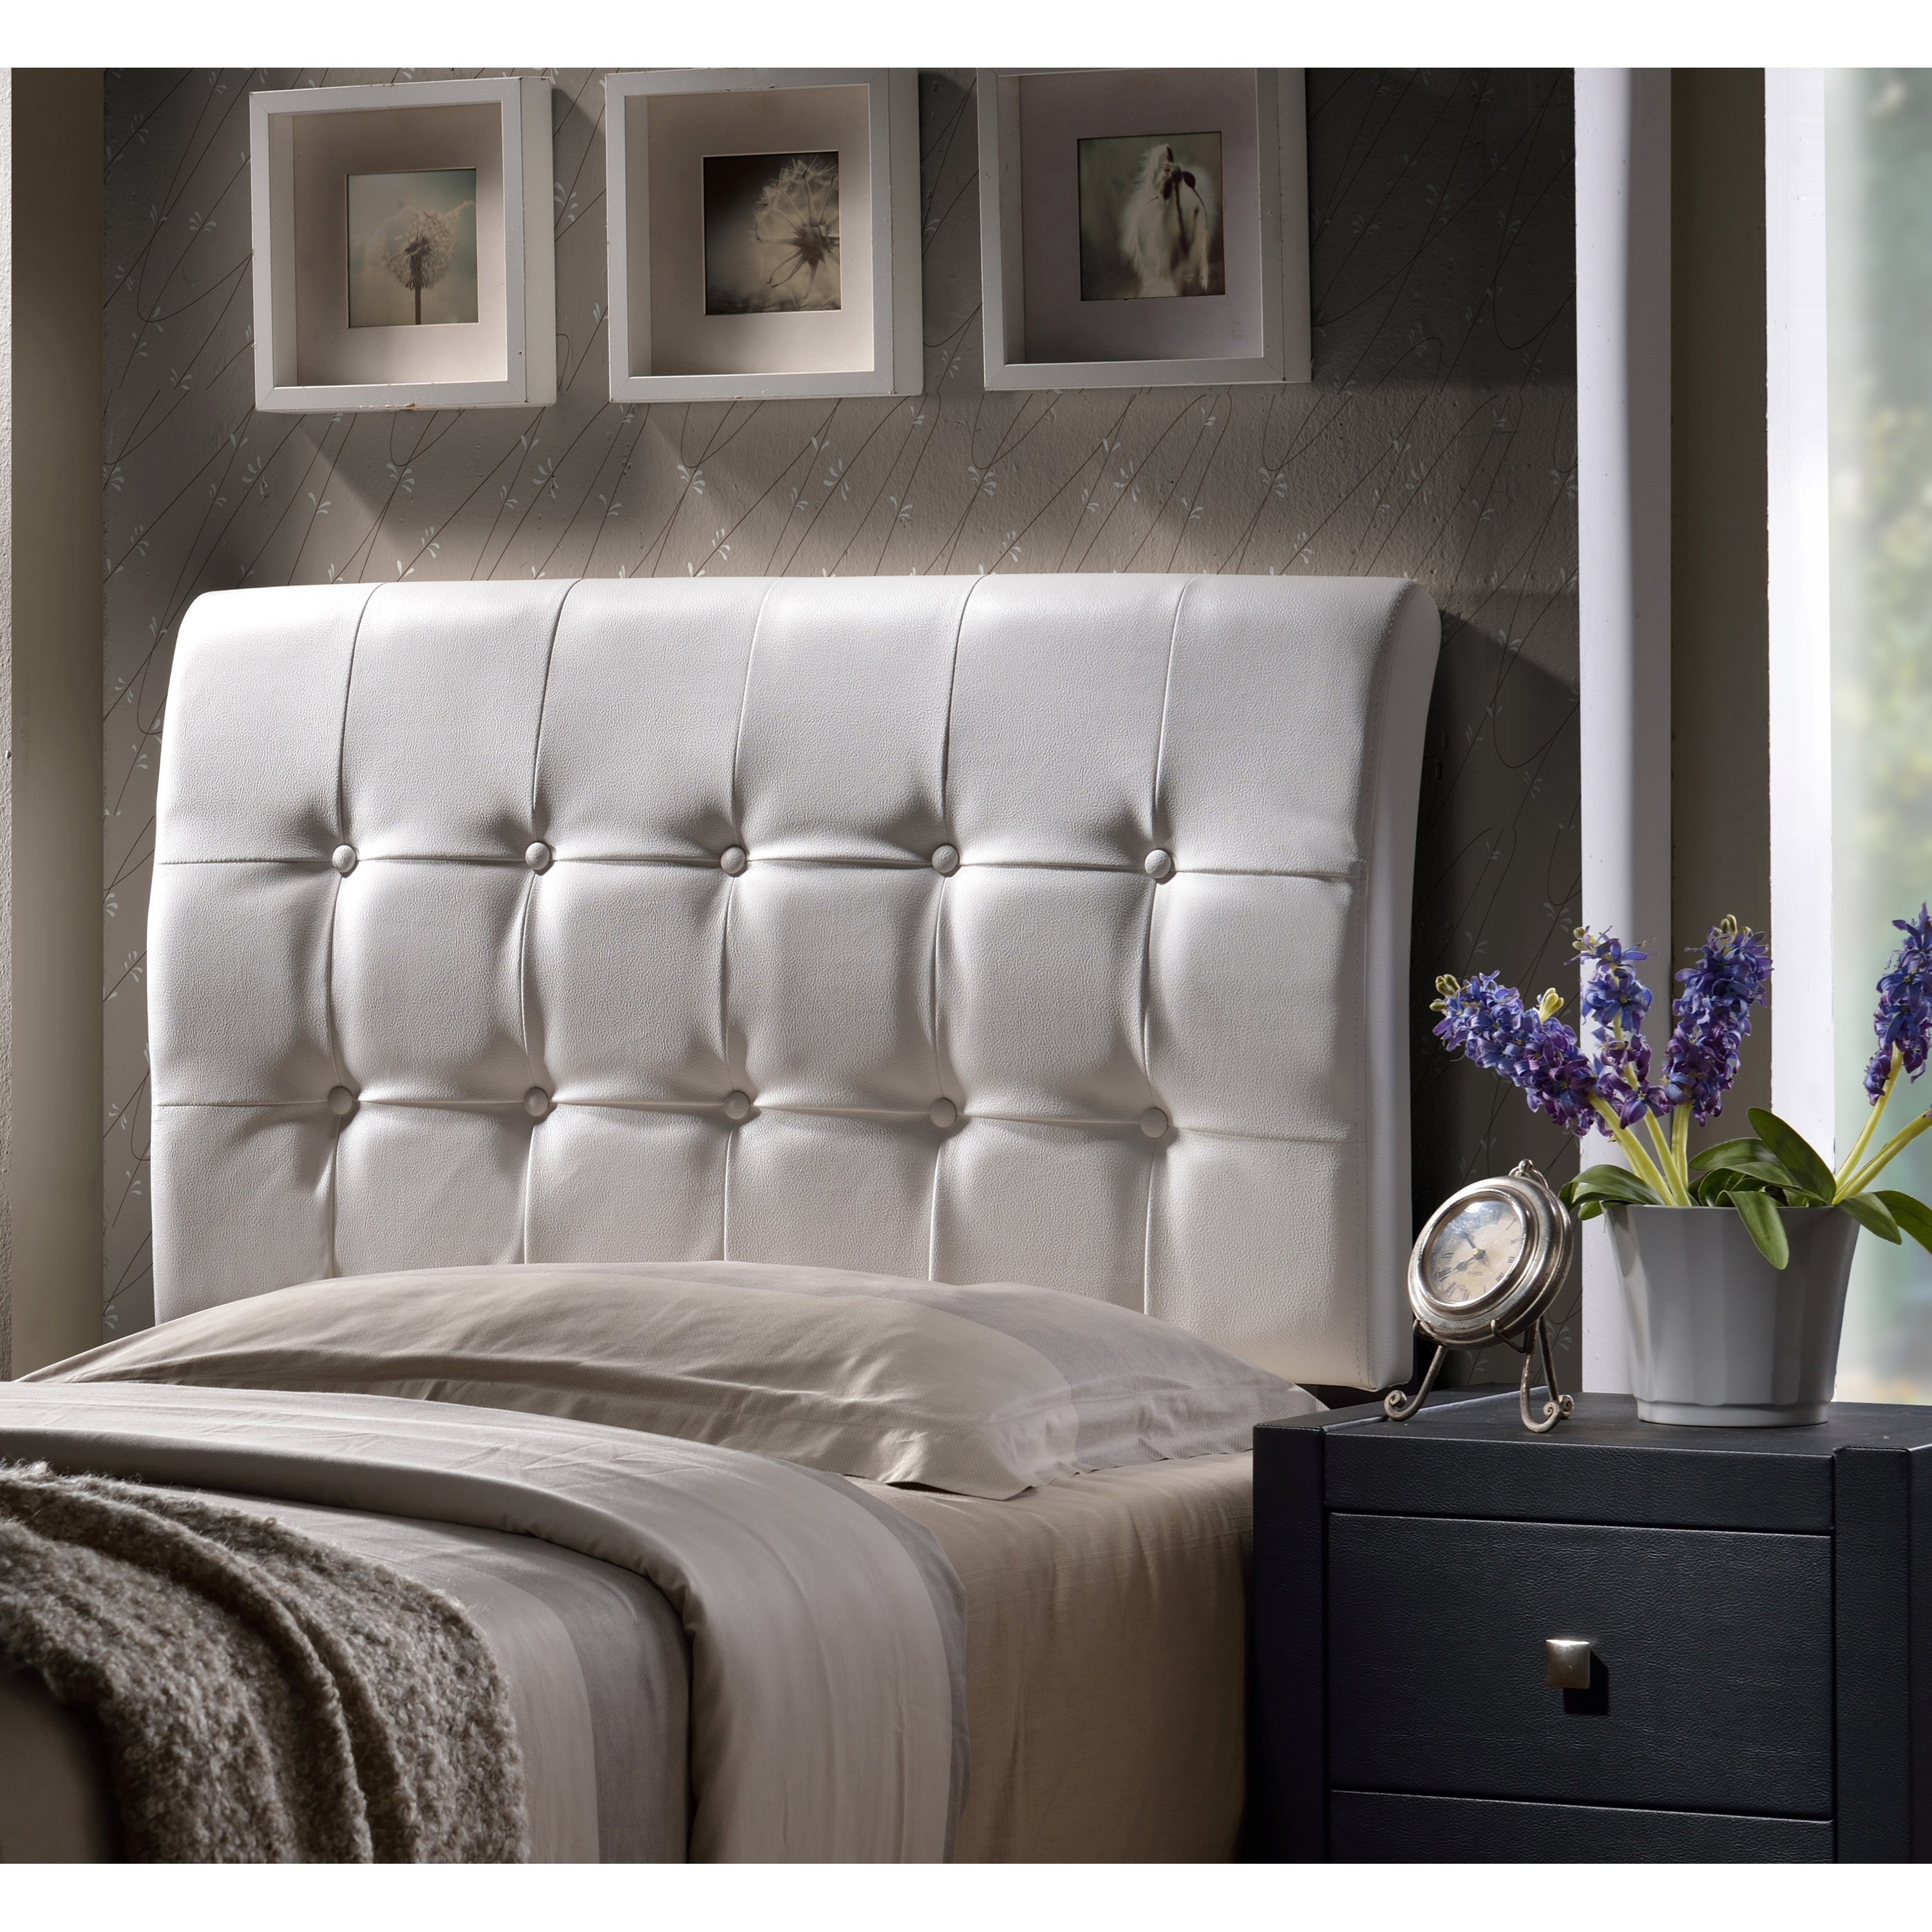 Upholstered Beds Lusso King Headboard with Rails by Hillsdale at Steger's Furniture